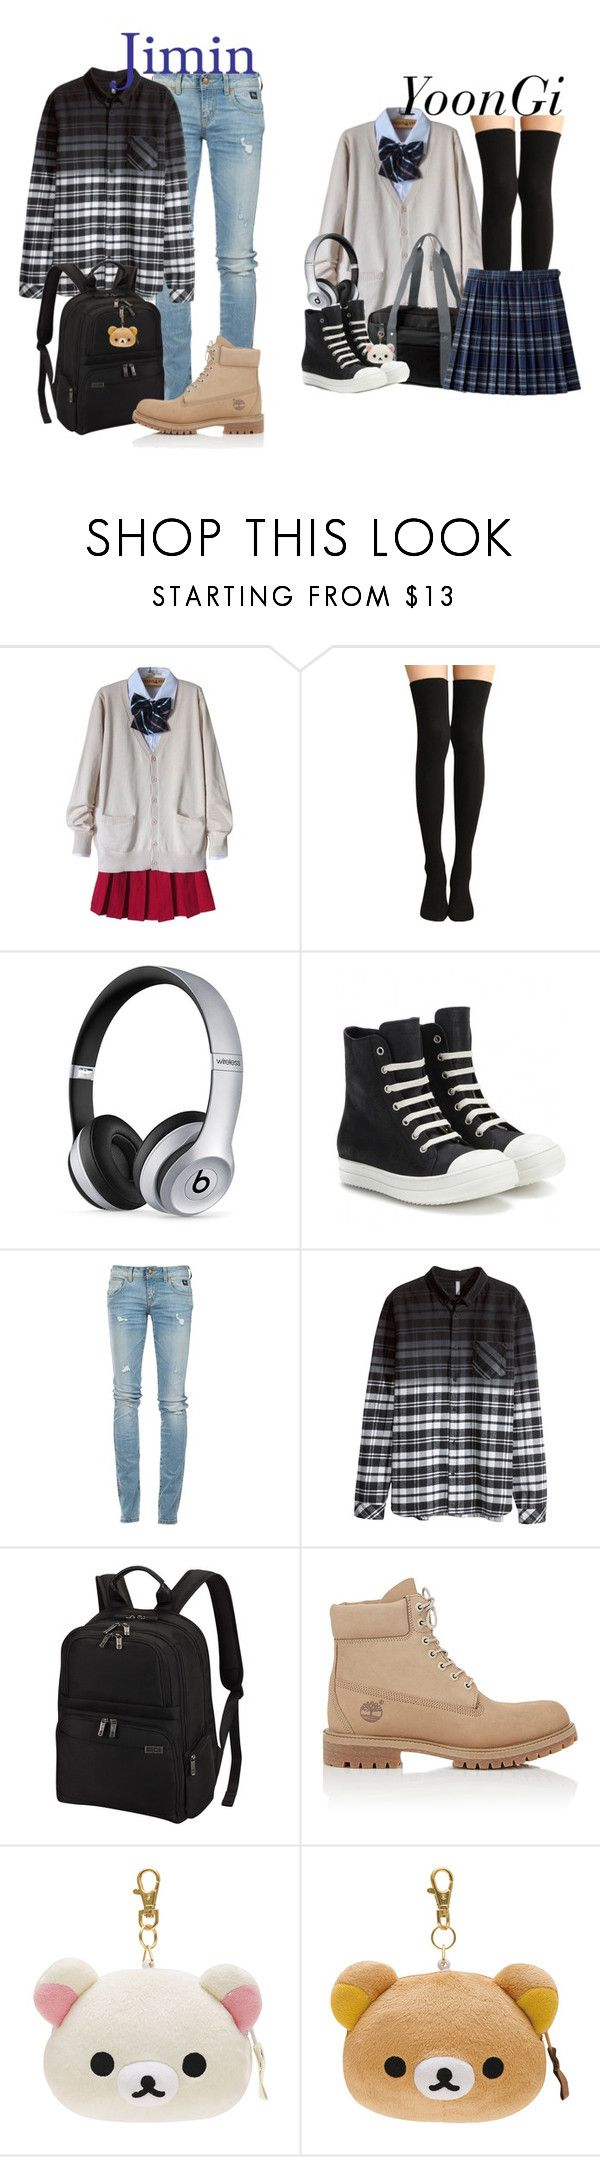 """Yoonmin"" by cristinalvarez ❤ liked on Polyvore featuring Beats by Dr. Dre, Rick Owens, RoÃ¿ Roger's, H&M, Victorinox Swiss Army and Timberland"